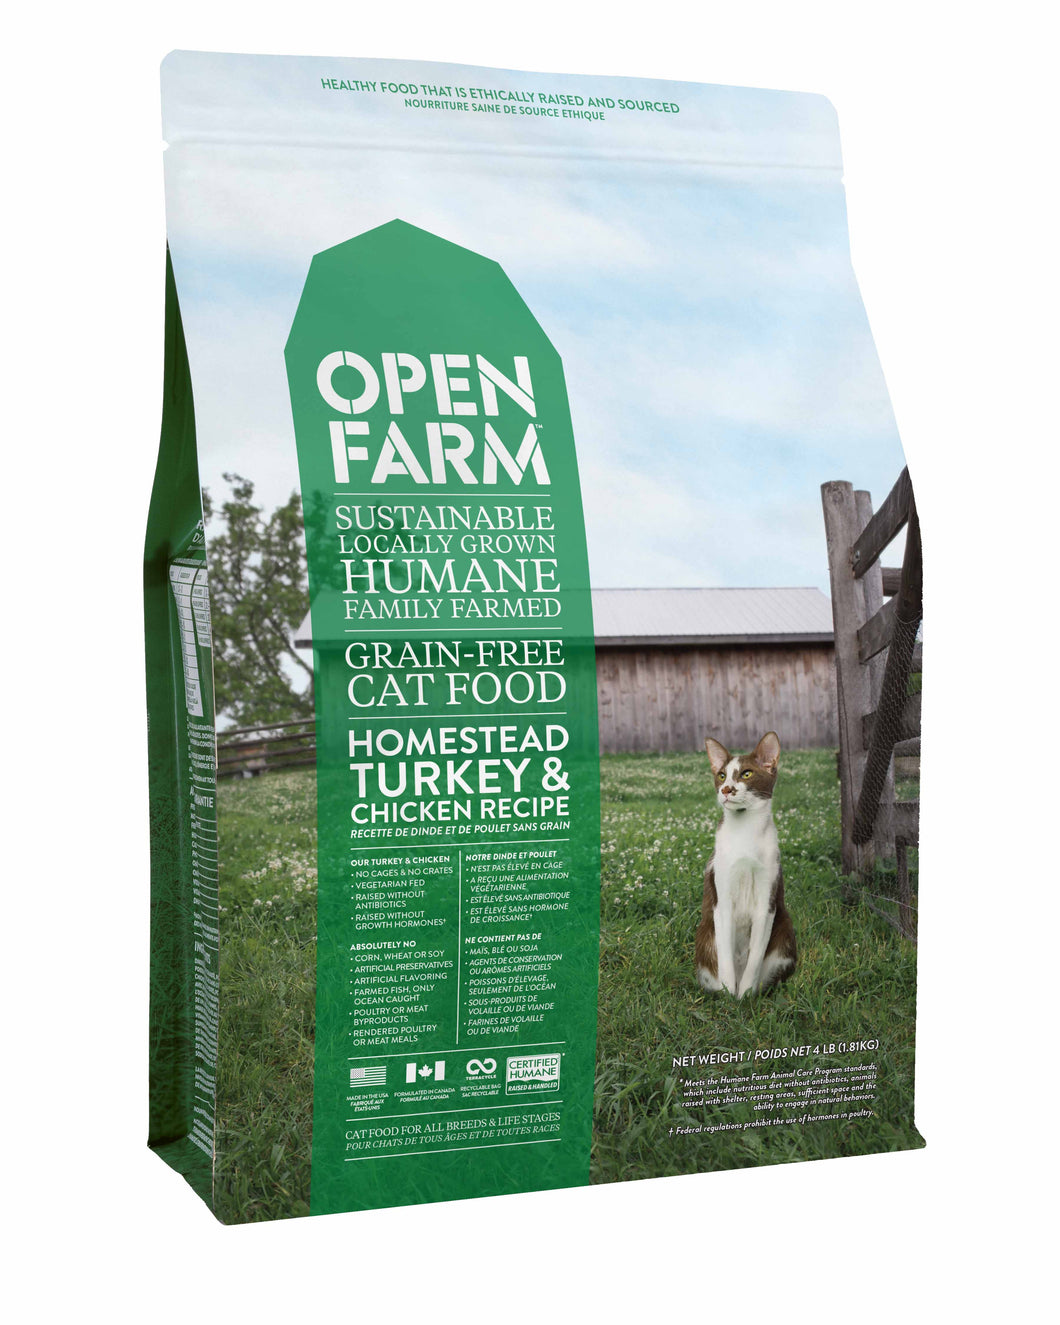 Open Farm grain free cat food - Homestead turkey and chicken recipe